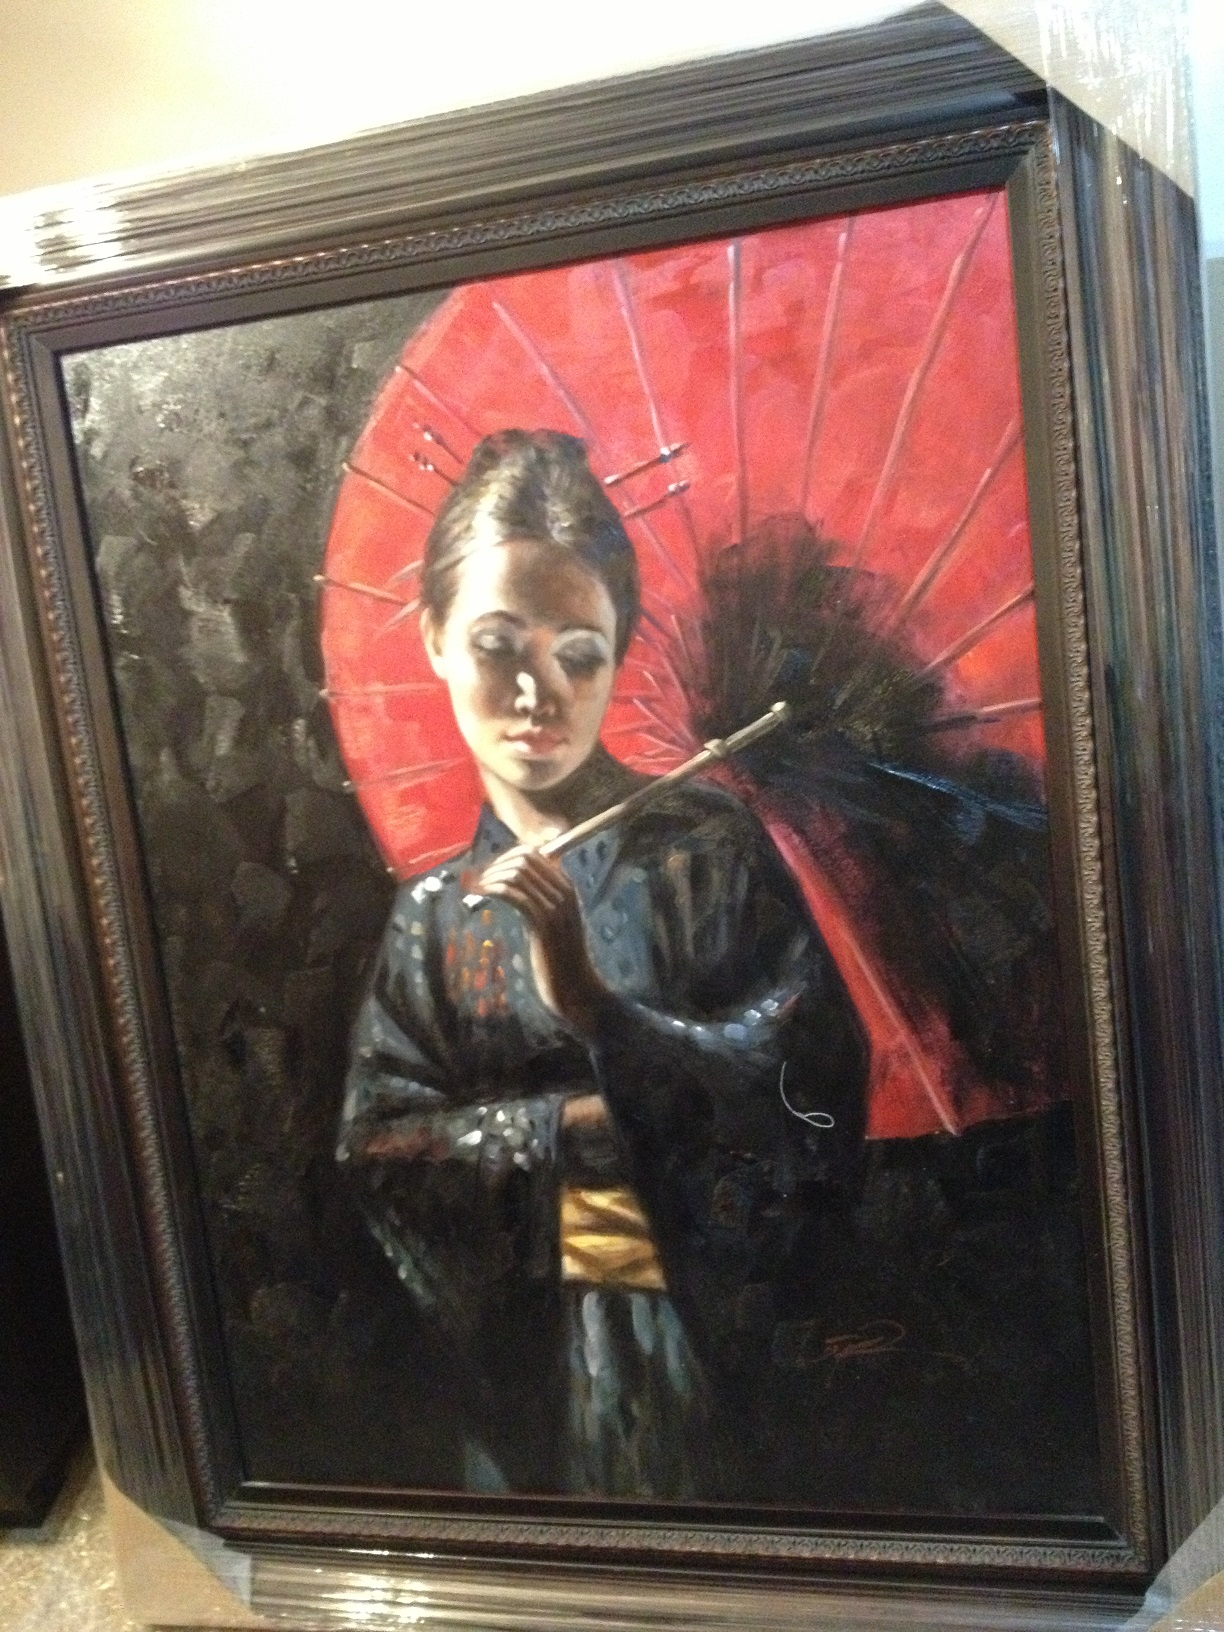 OIL PAINTING WITH FRAME - LADY WITH UMBRELLA